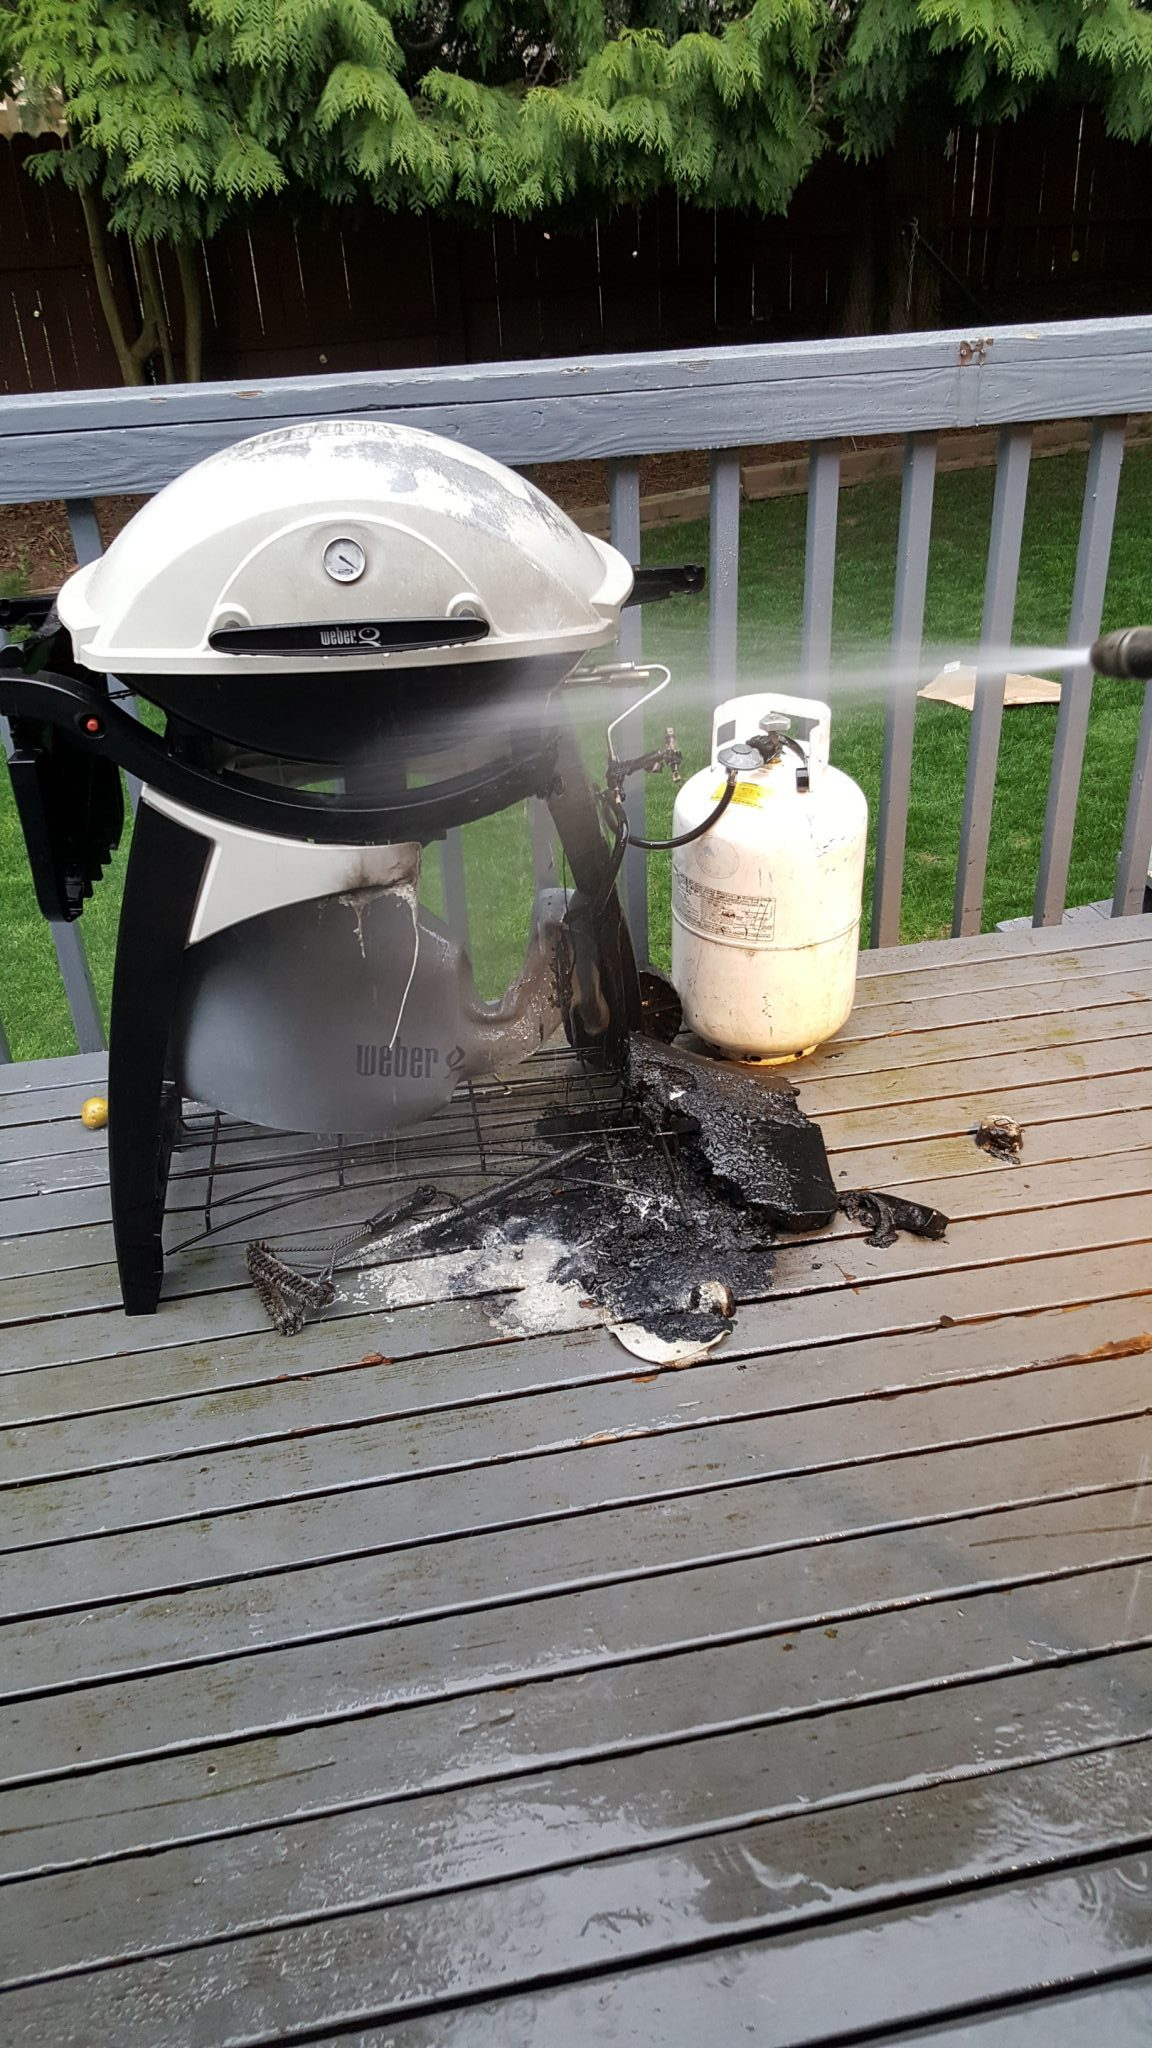 Grill Fire Behr Deckover Paint Prevented The Top Of Deck From Burning